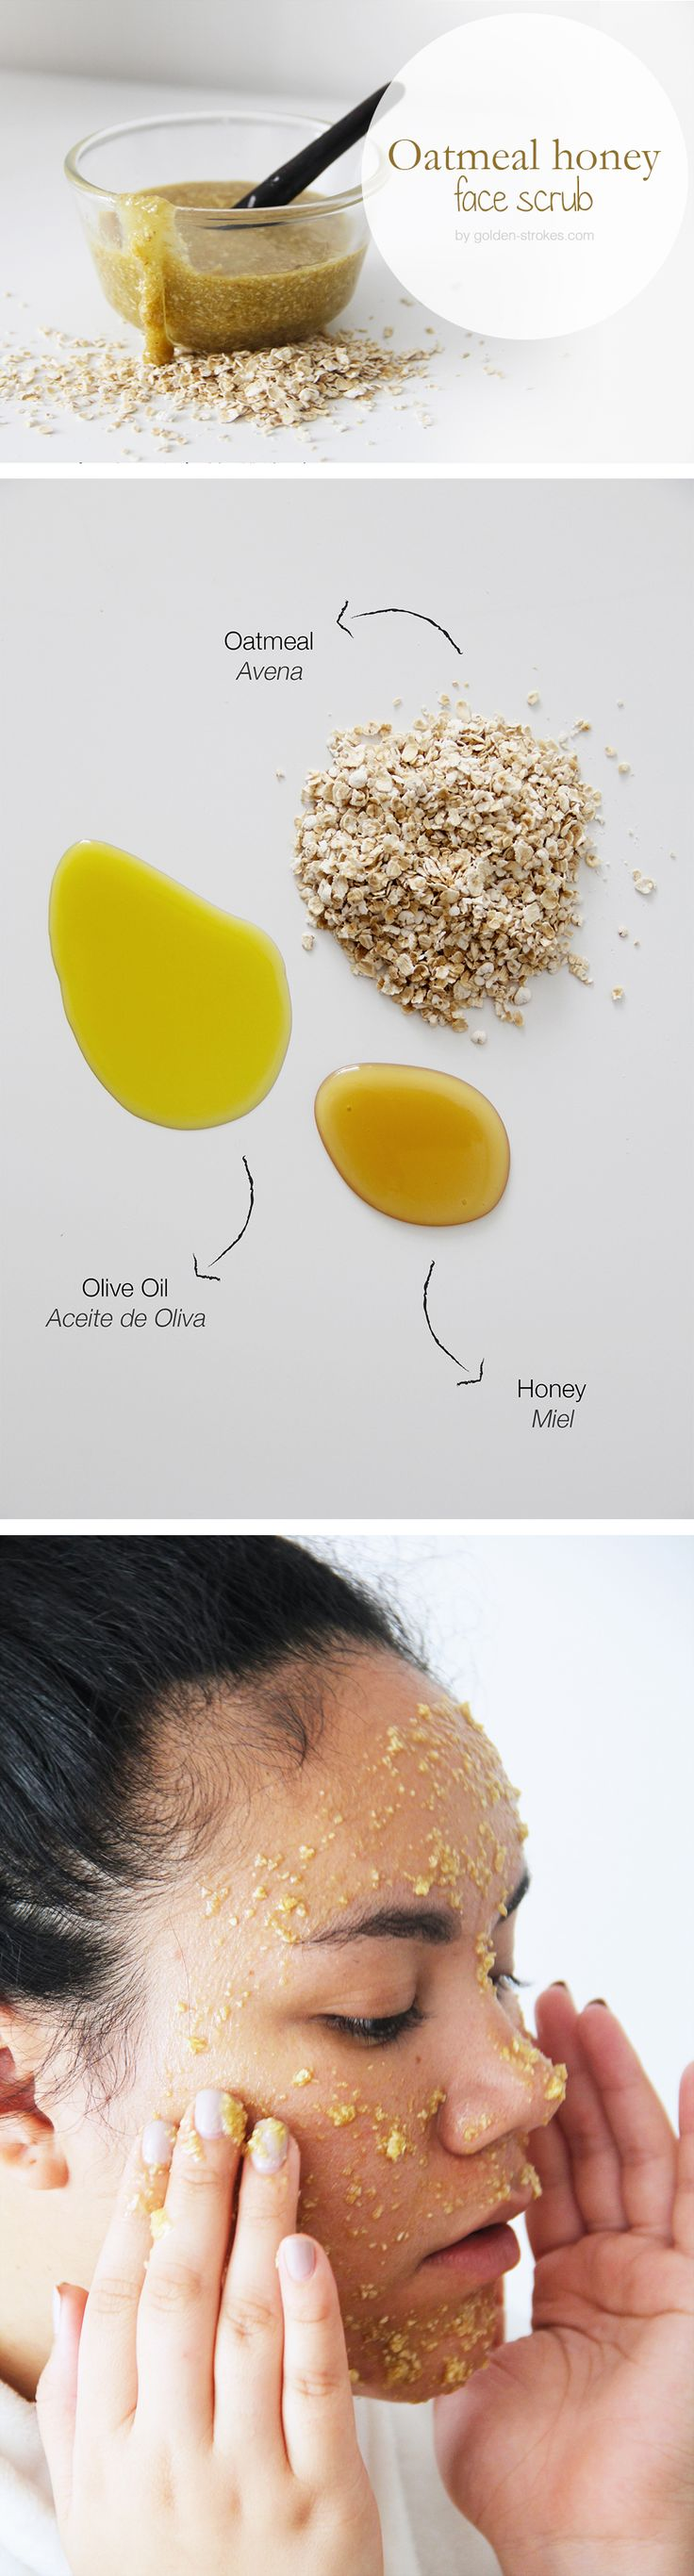 Oatmeal honey face scrub DIY | GOLDEN STROKES